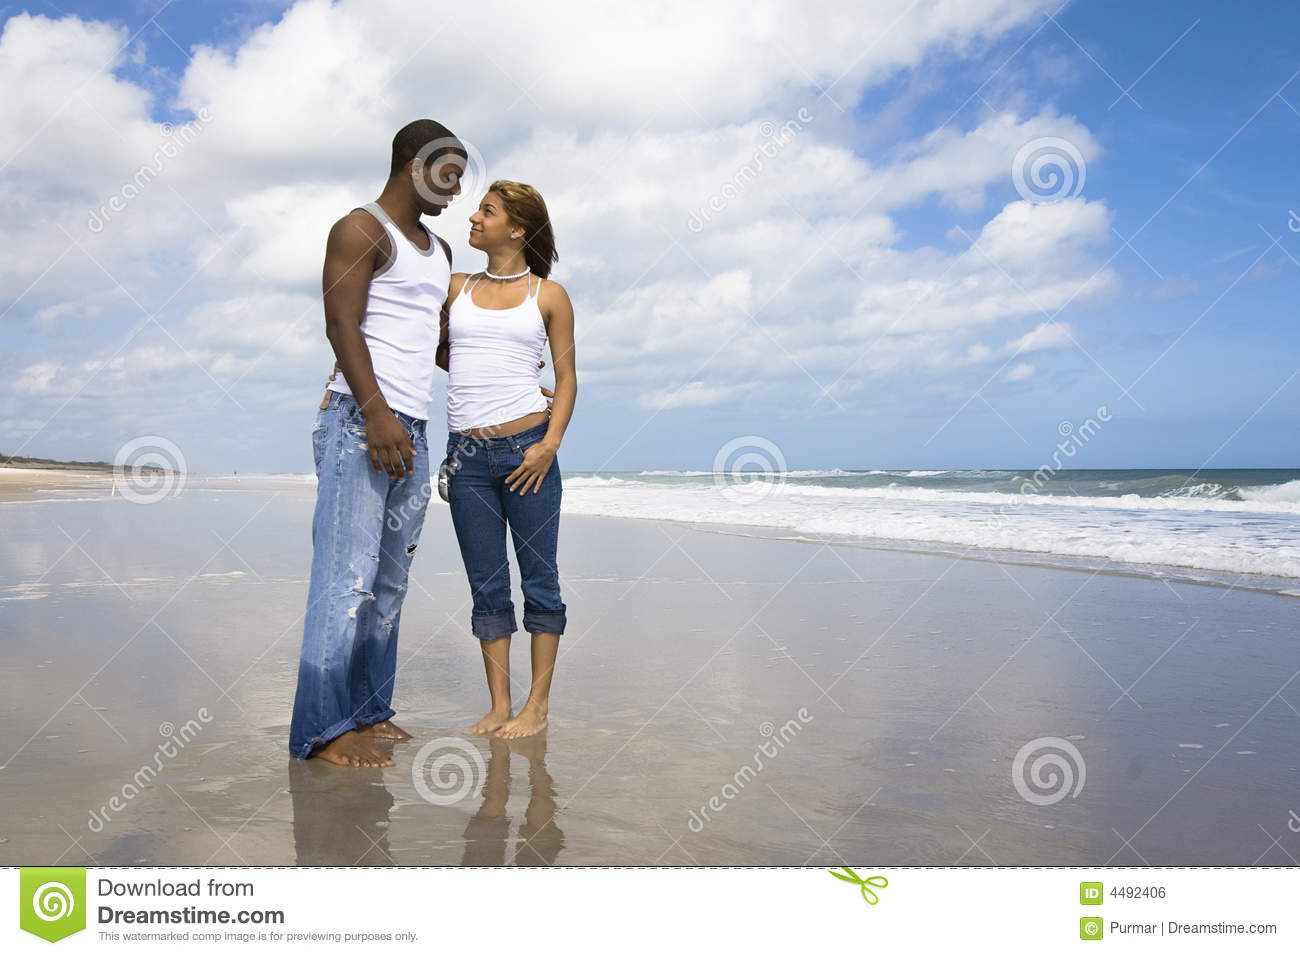 Couple on beach vacation royalty free stock image image for Best beach vacations in us for couples